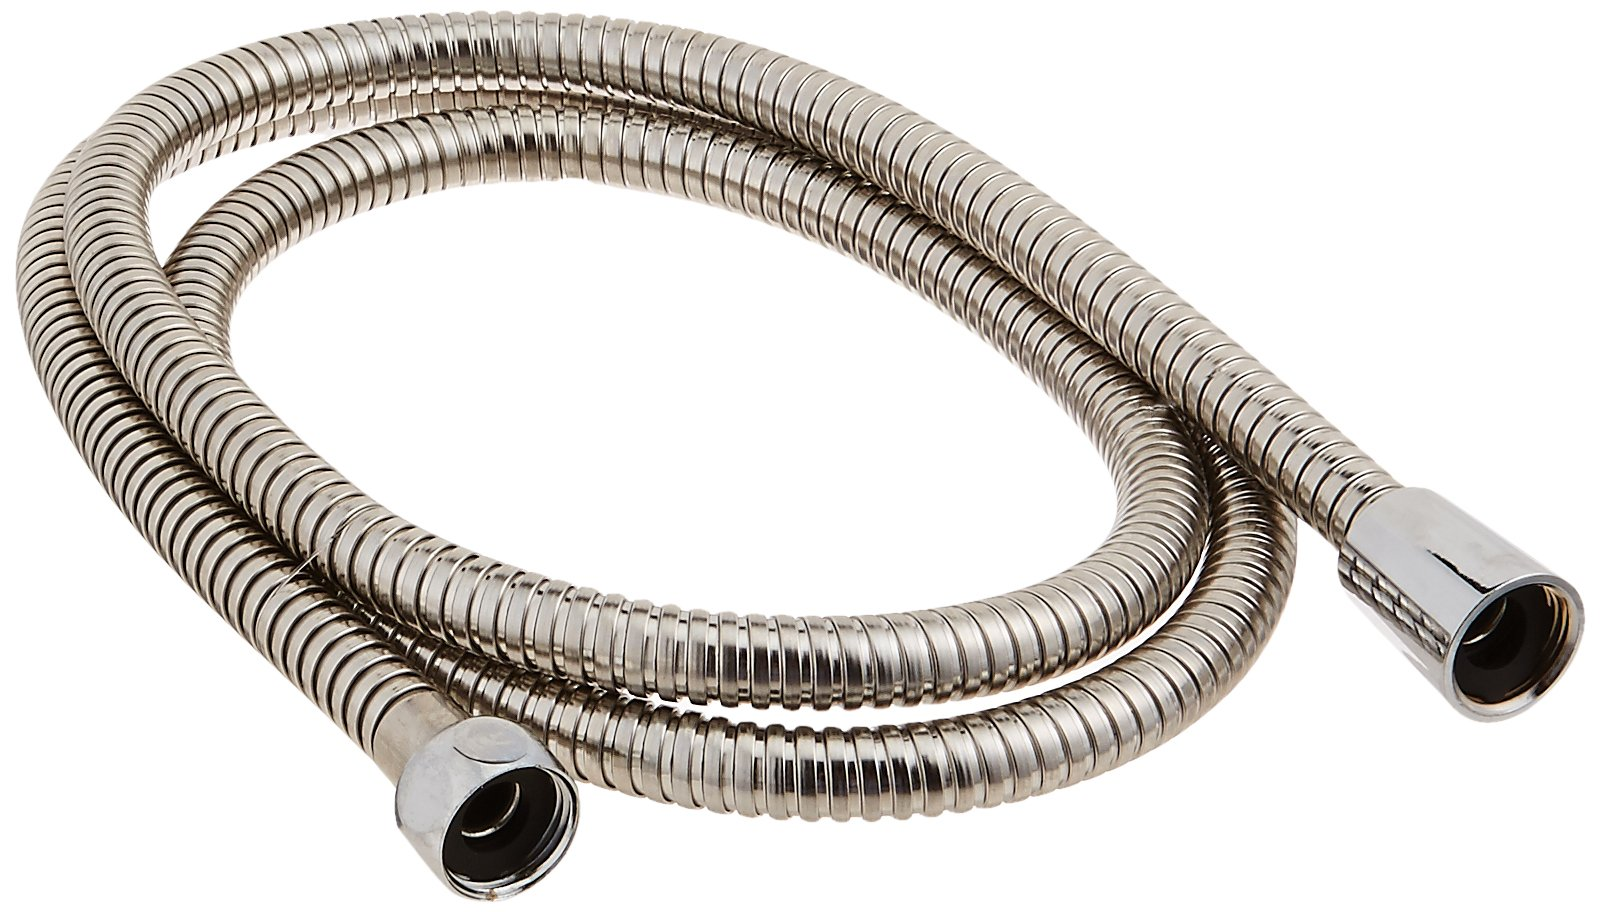 Delta Faucet U495S-69-PK 69-Inch Stainless Steel Hose, Chrome